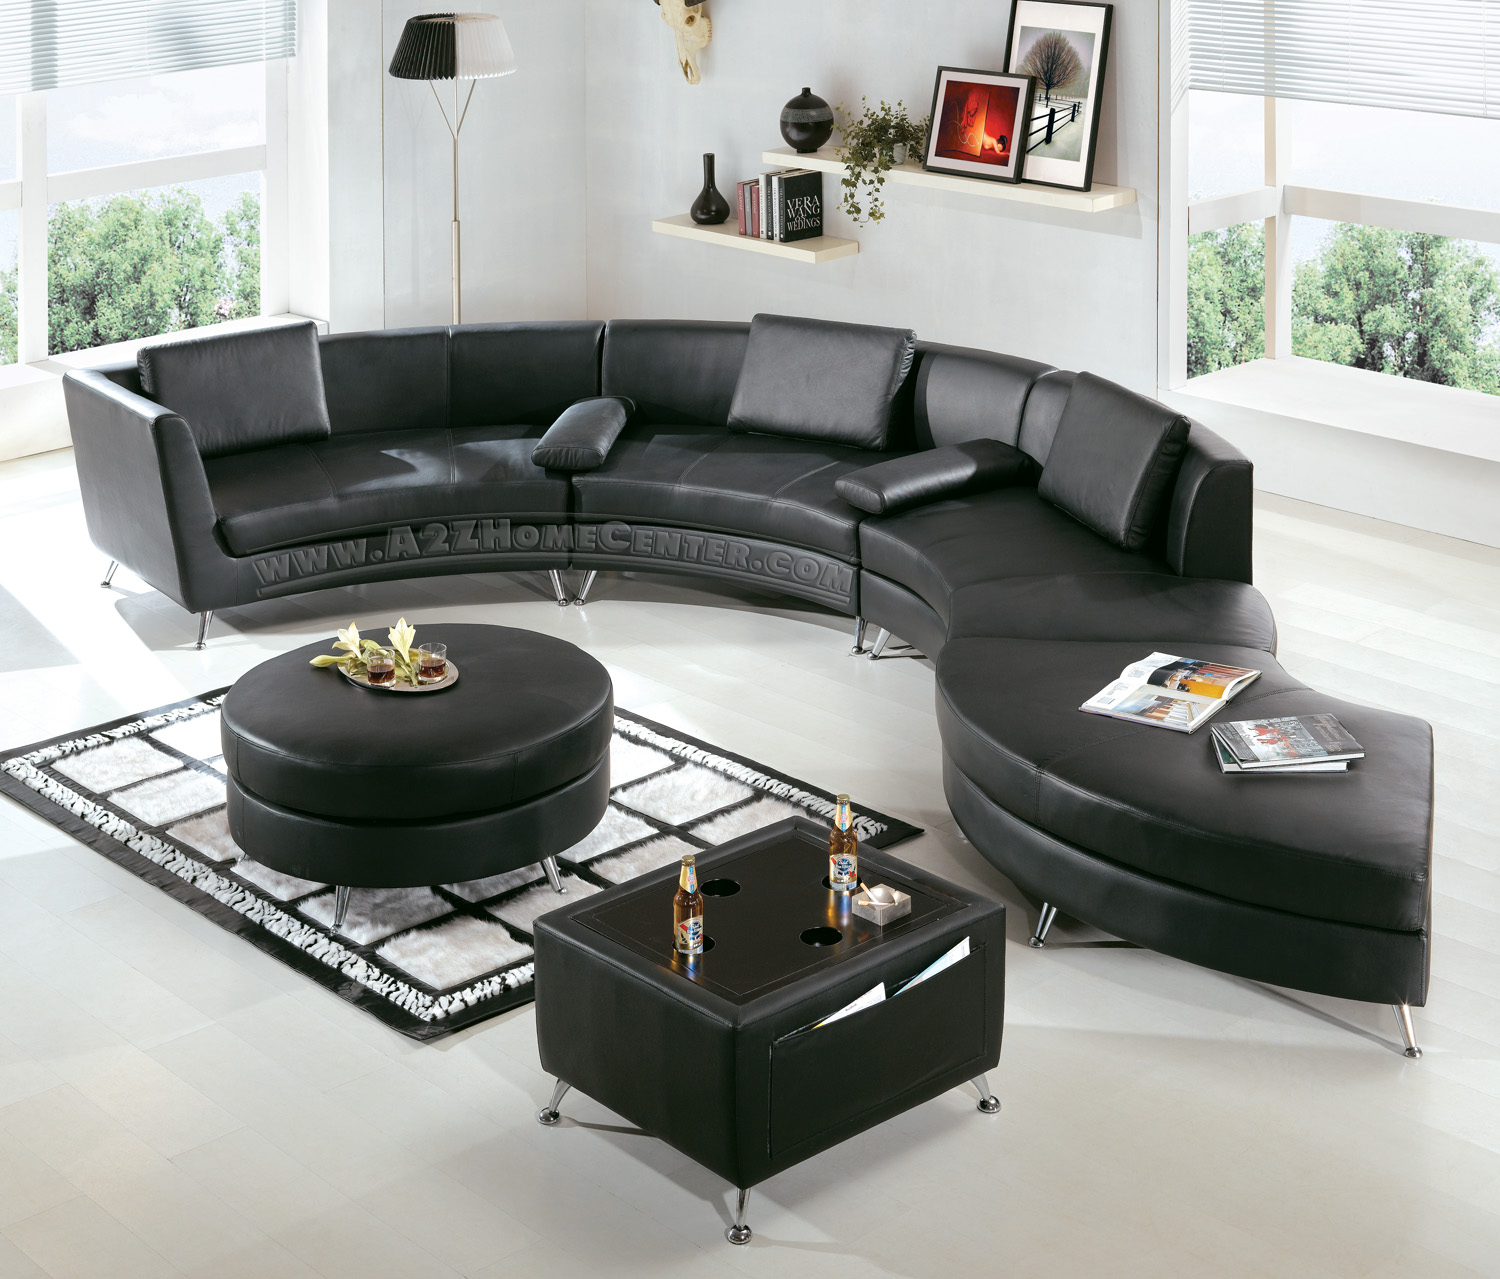 Remarkable Modern Living Room Furniture 1500 x 1279 · 409 kB · jpeg